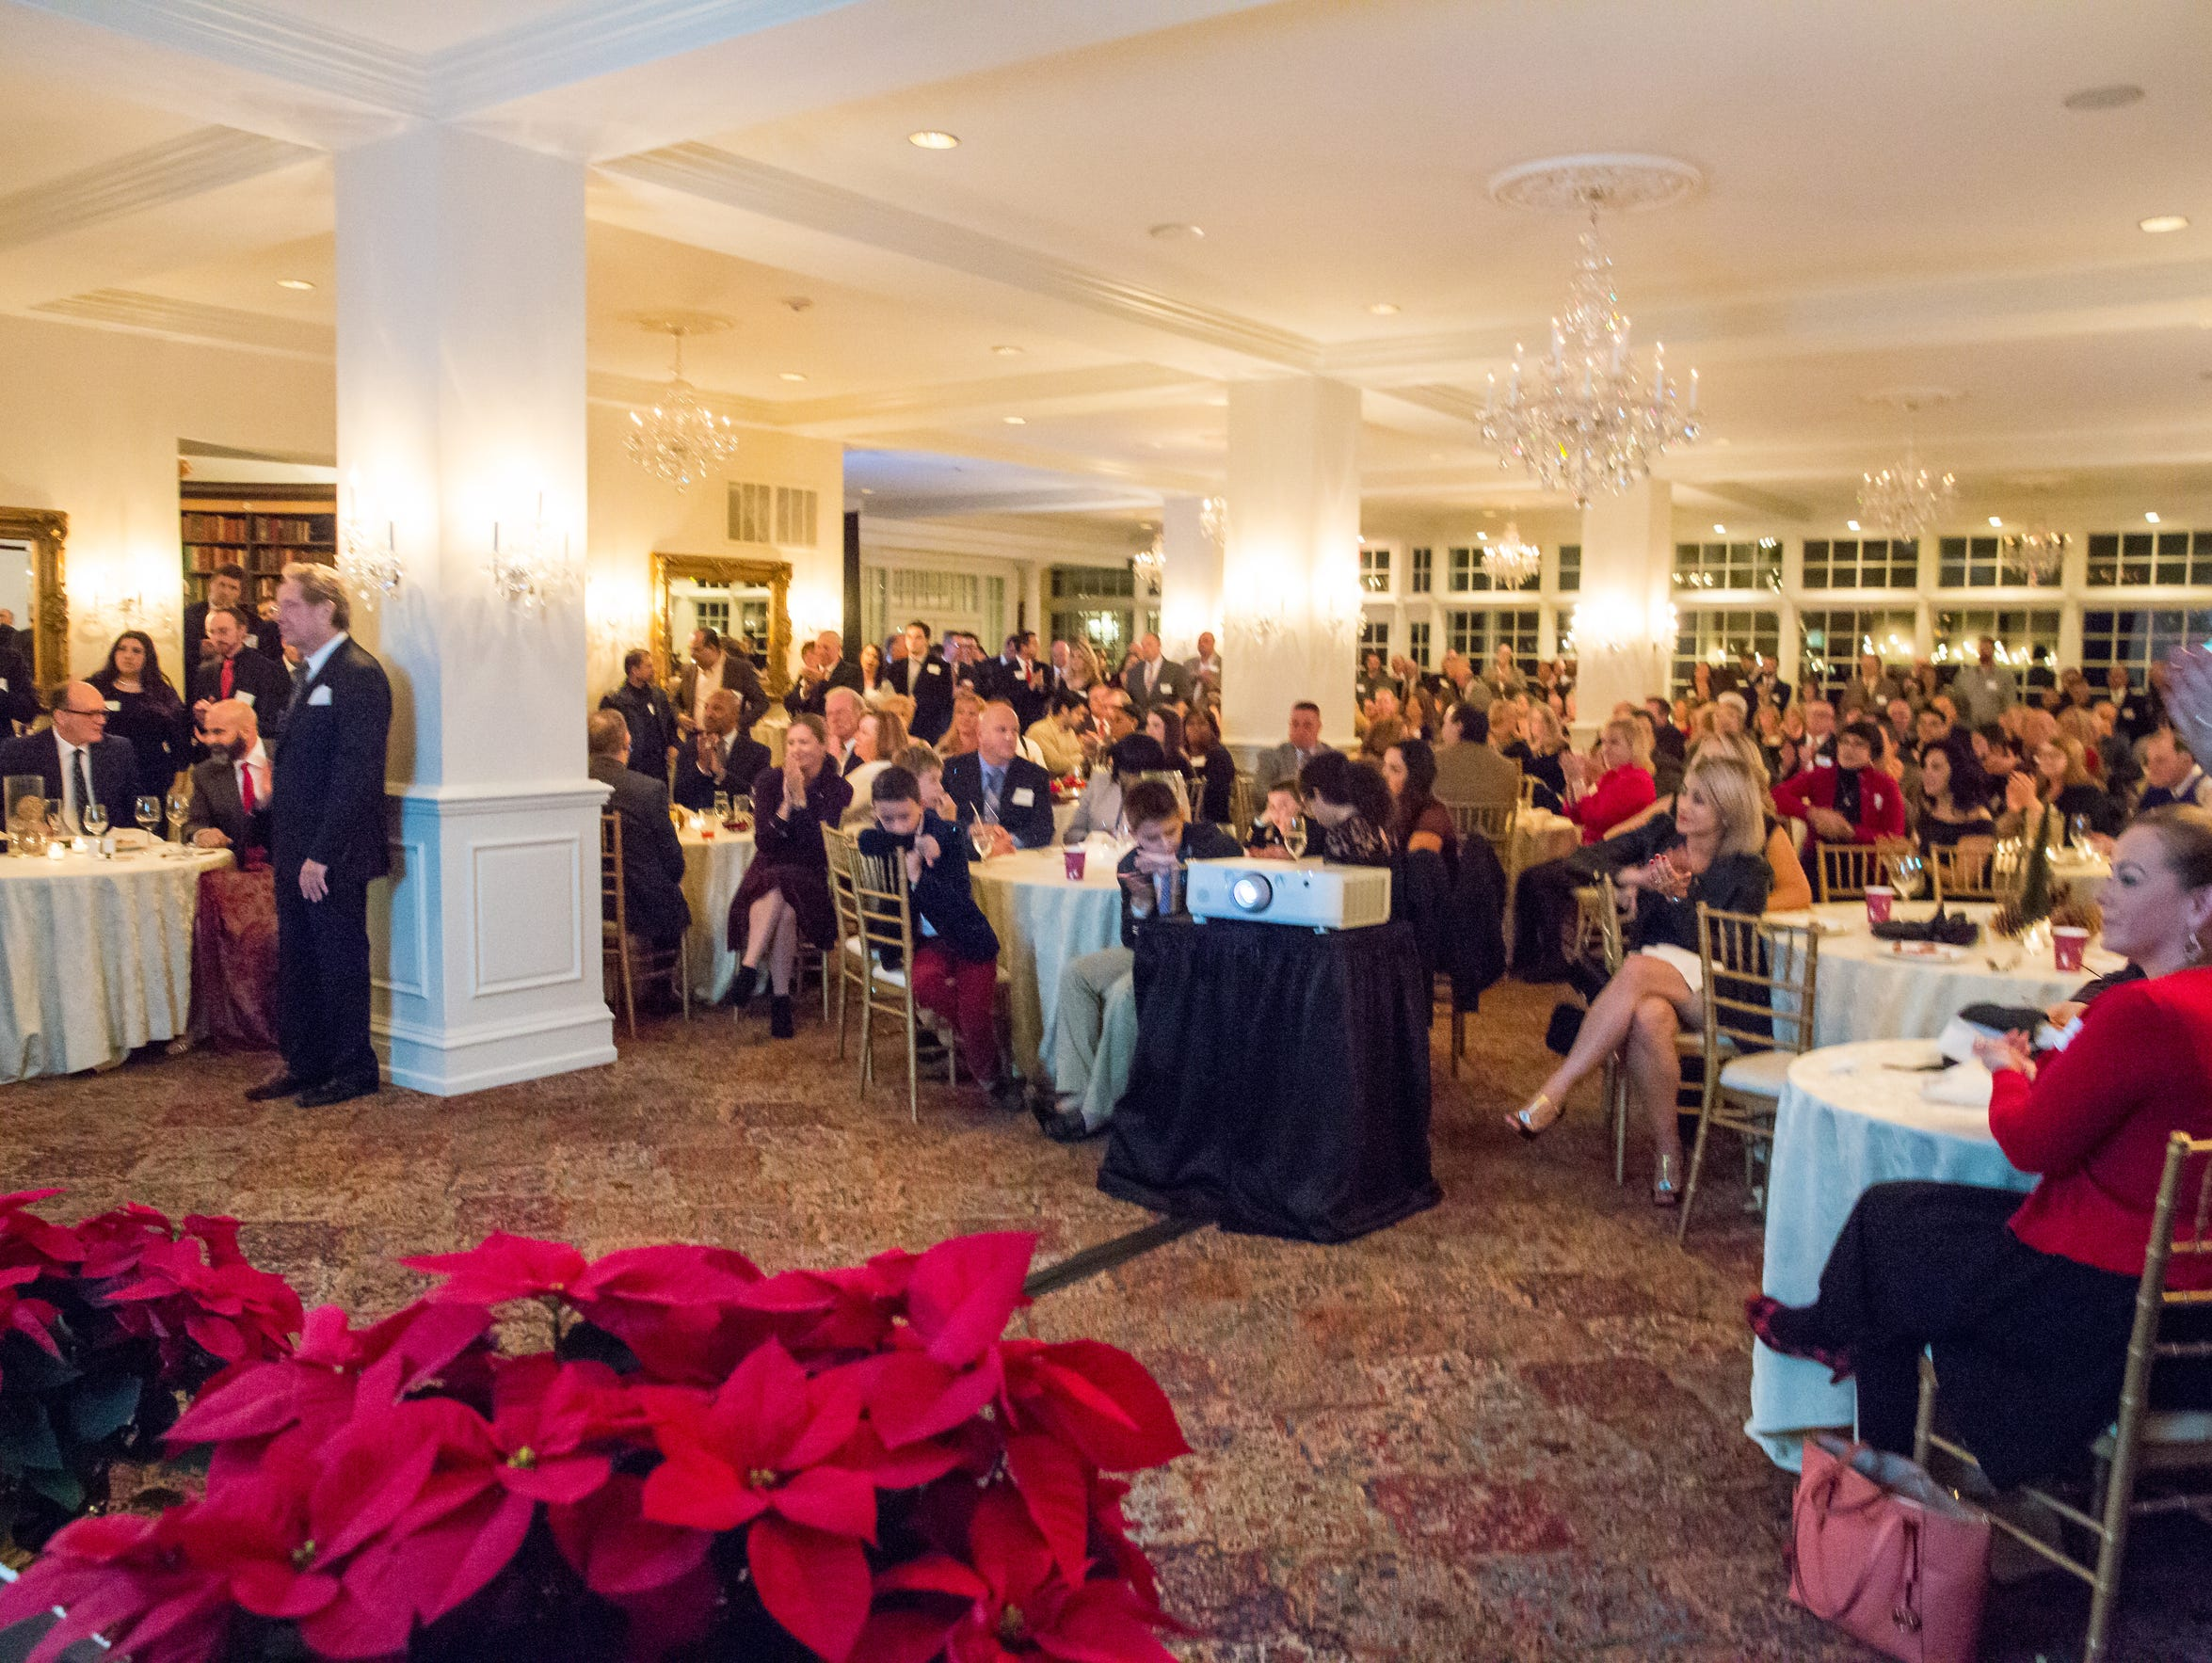 The Somerset Patriots held their Christmas party at